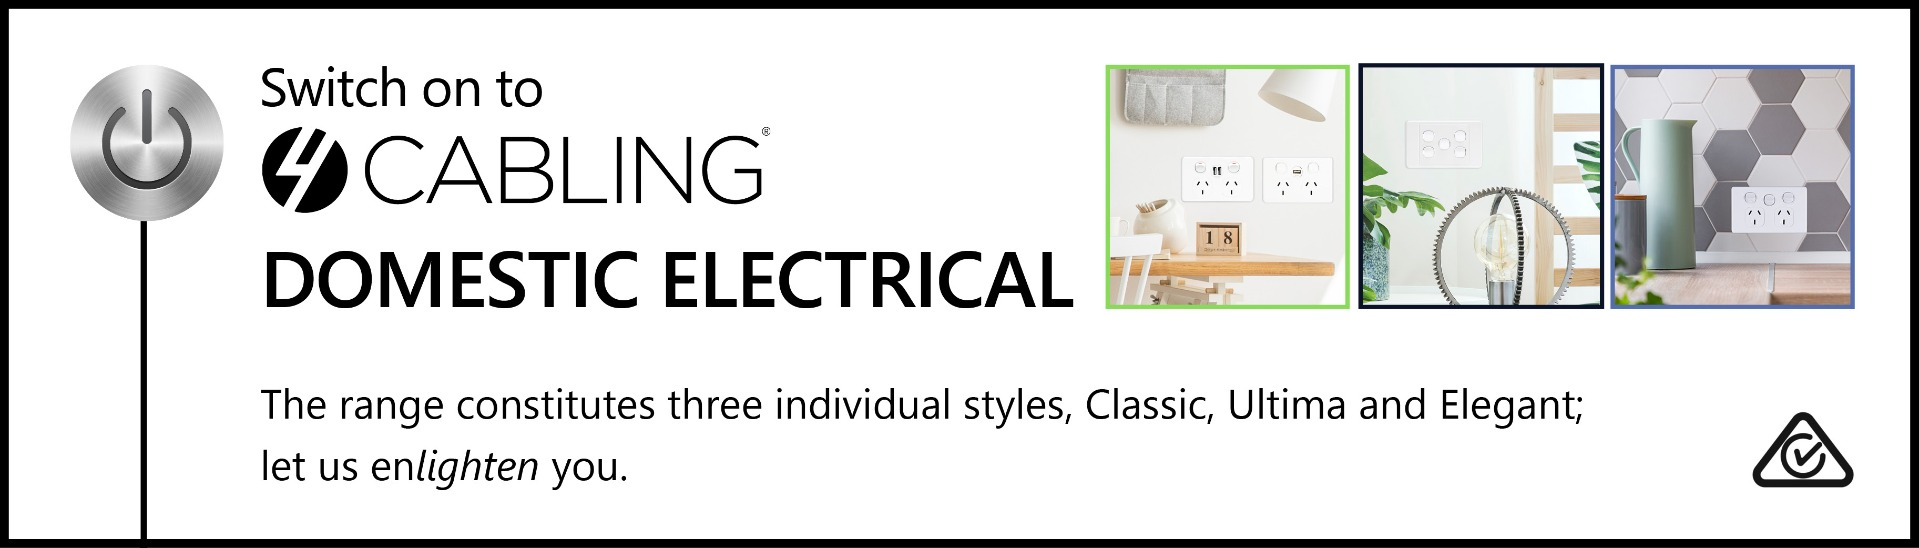 4Cabling | Electrical Accessories | Domestic